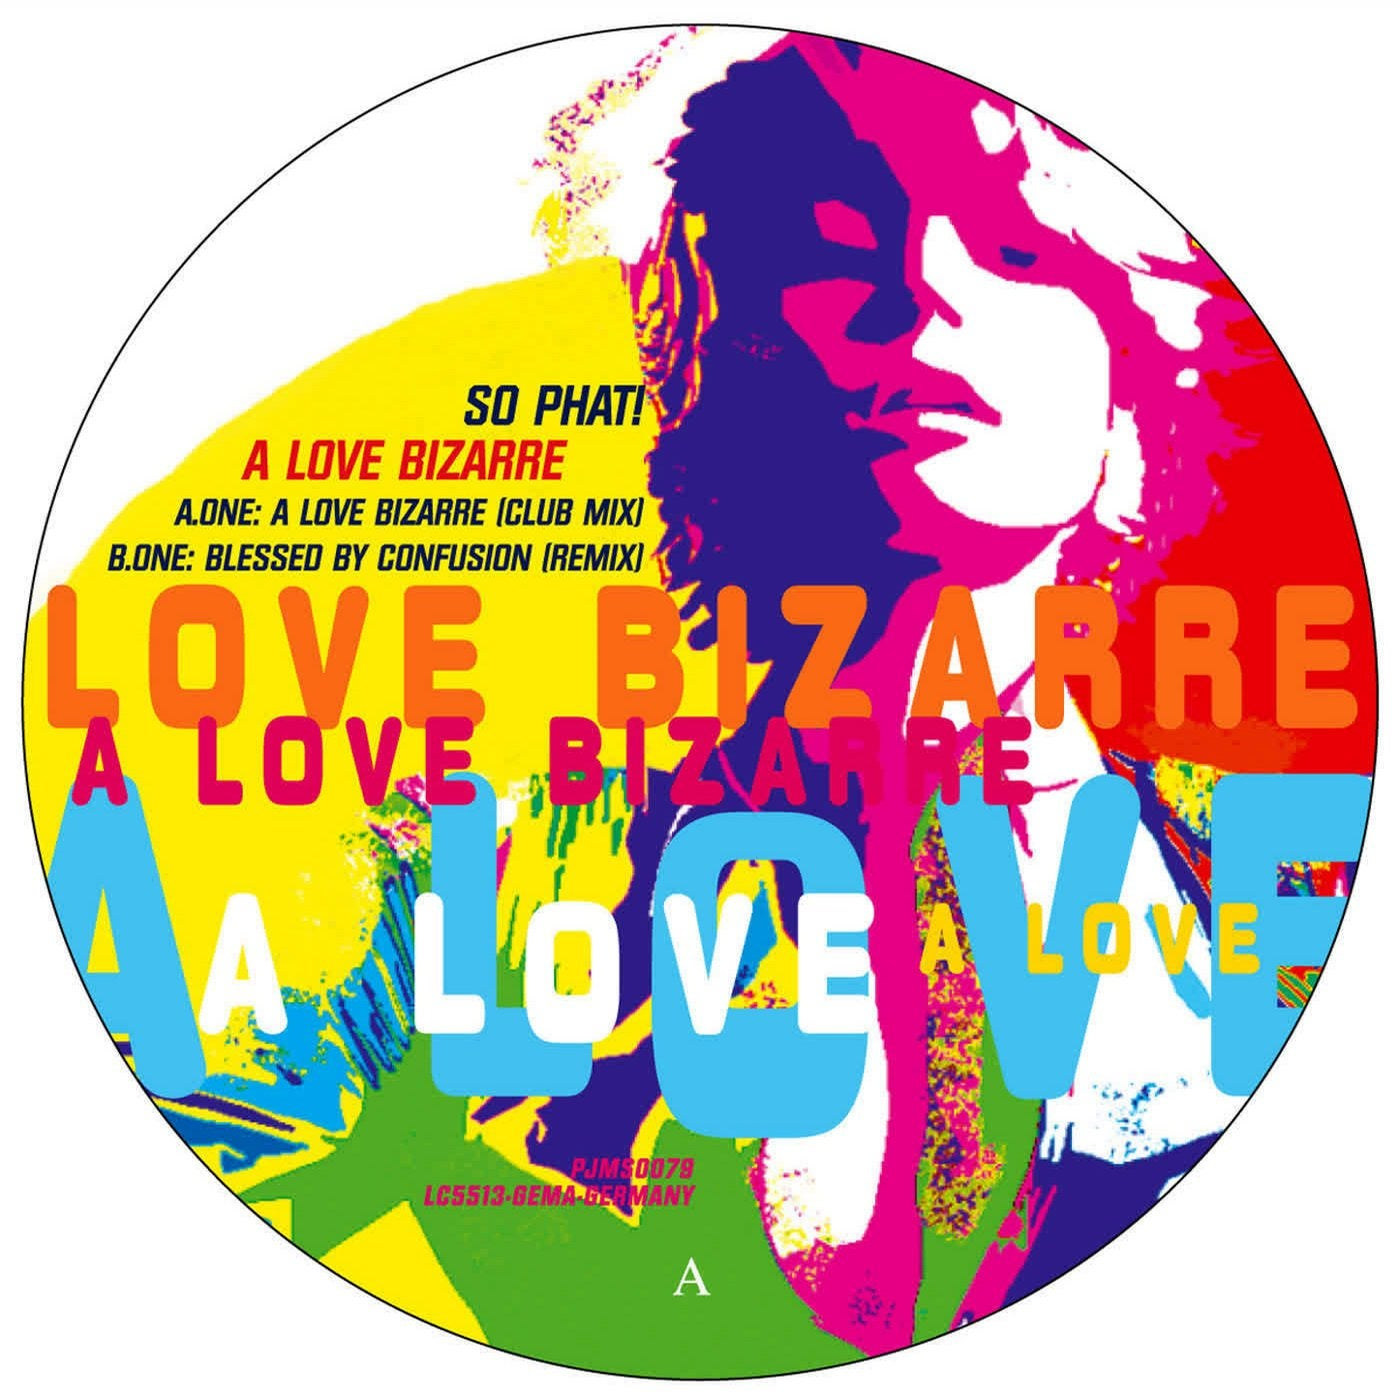 A Love Bizarre (Club Mix)